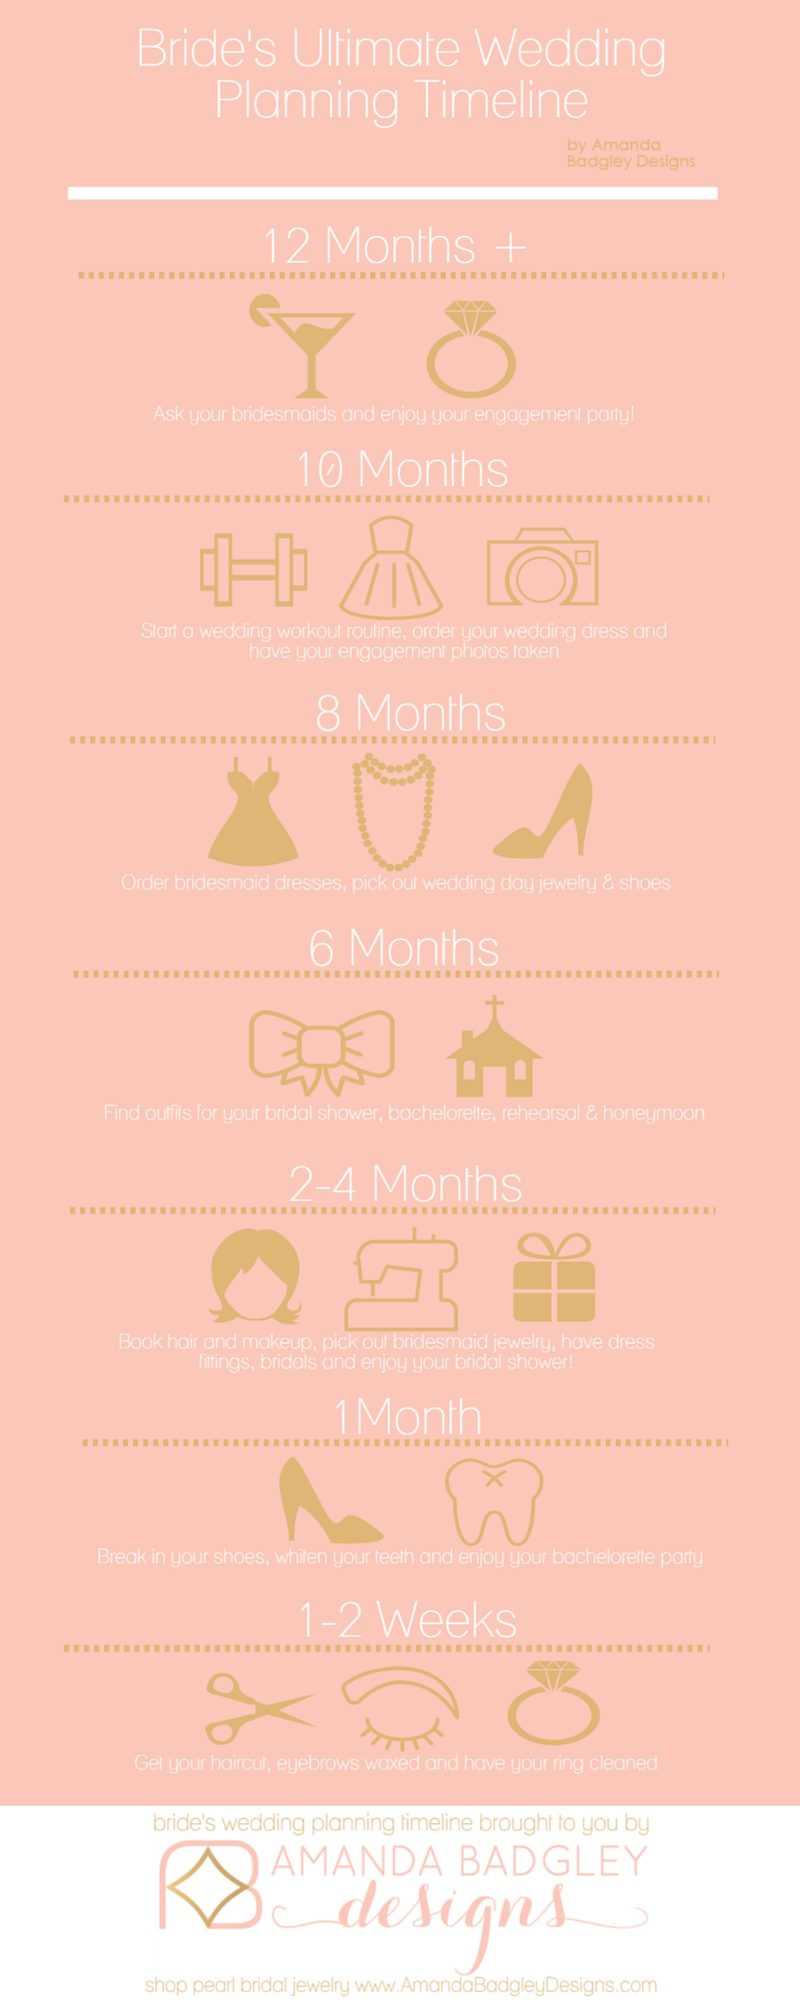 Find Out How To Plan A Wedding With Our Bride's Wedding Planning Timeline